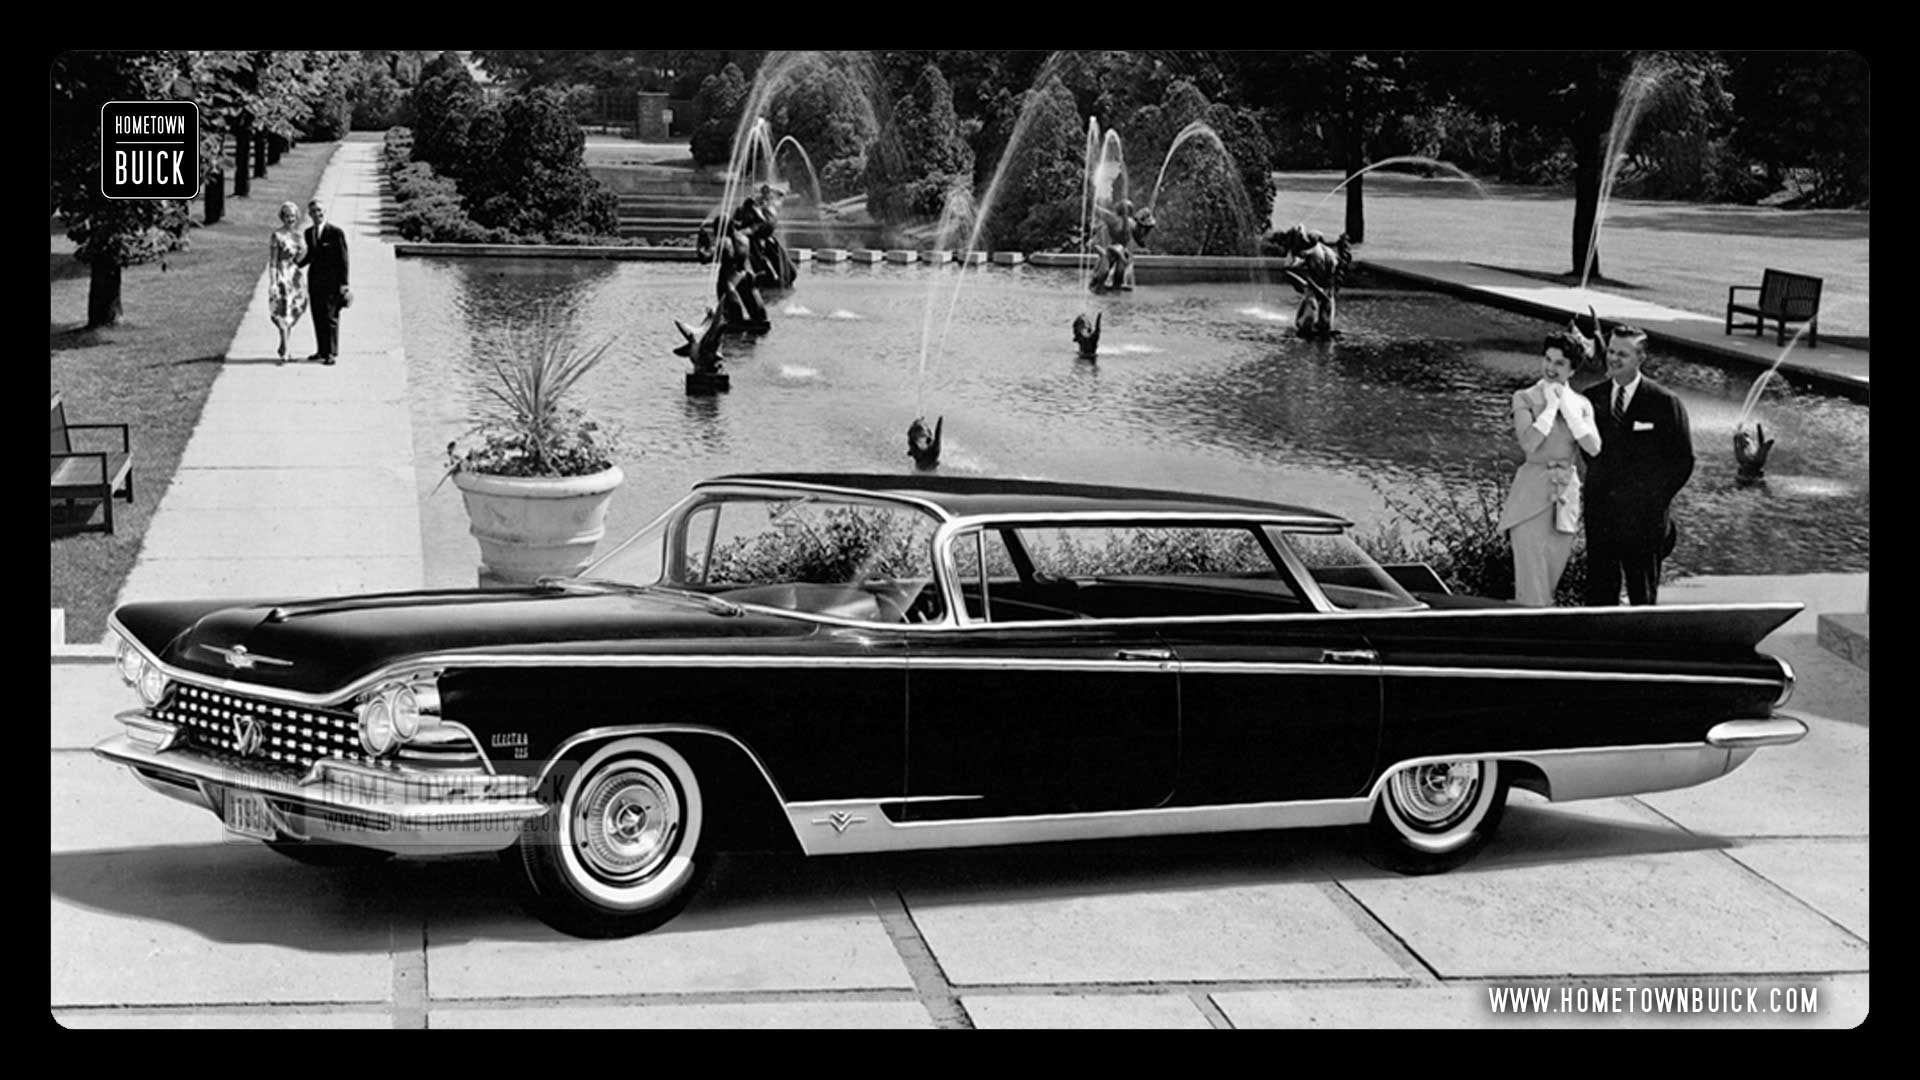 Buick Wallpaper on 02 Buick Lesabre